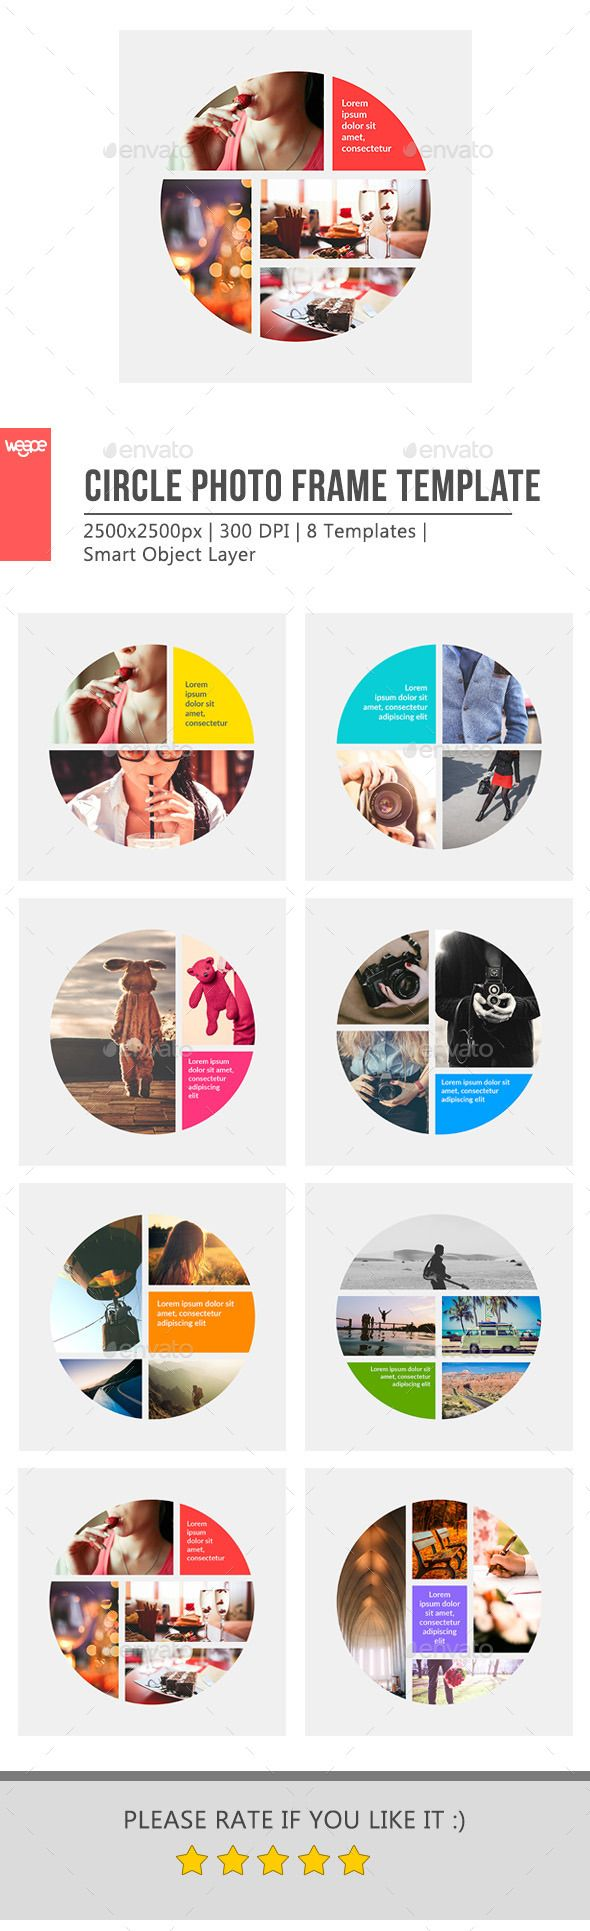 Circle Photo Frame Template PSD Download: http://graphicriver.net/item/circle-photo-frame-template/11761766?ref=ksioks